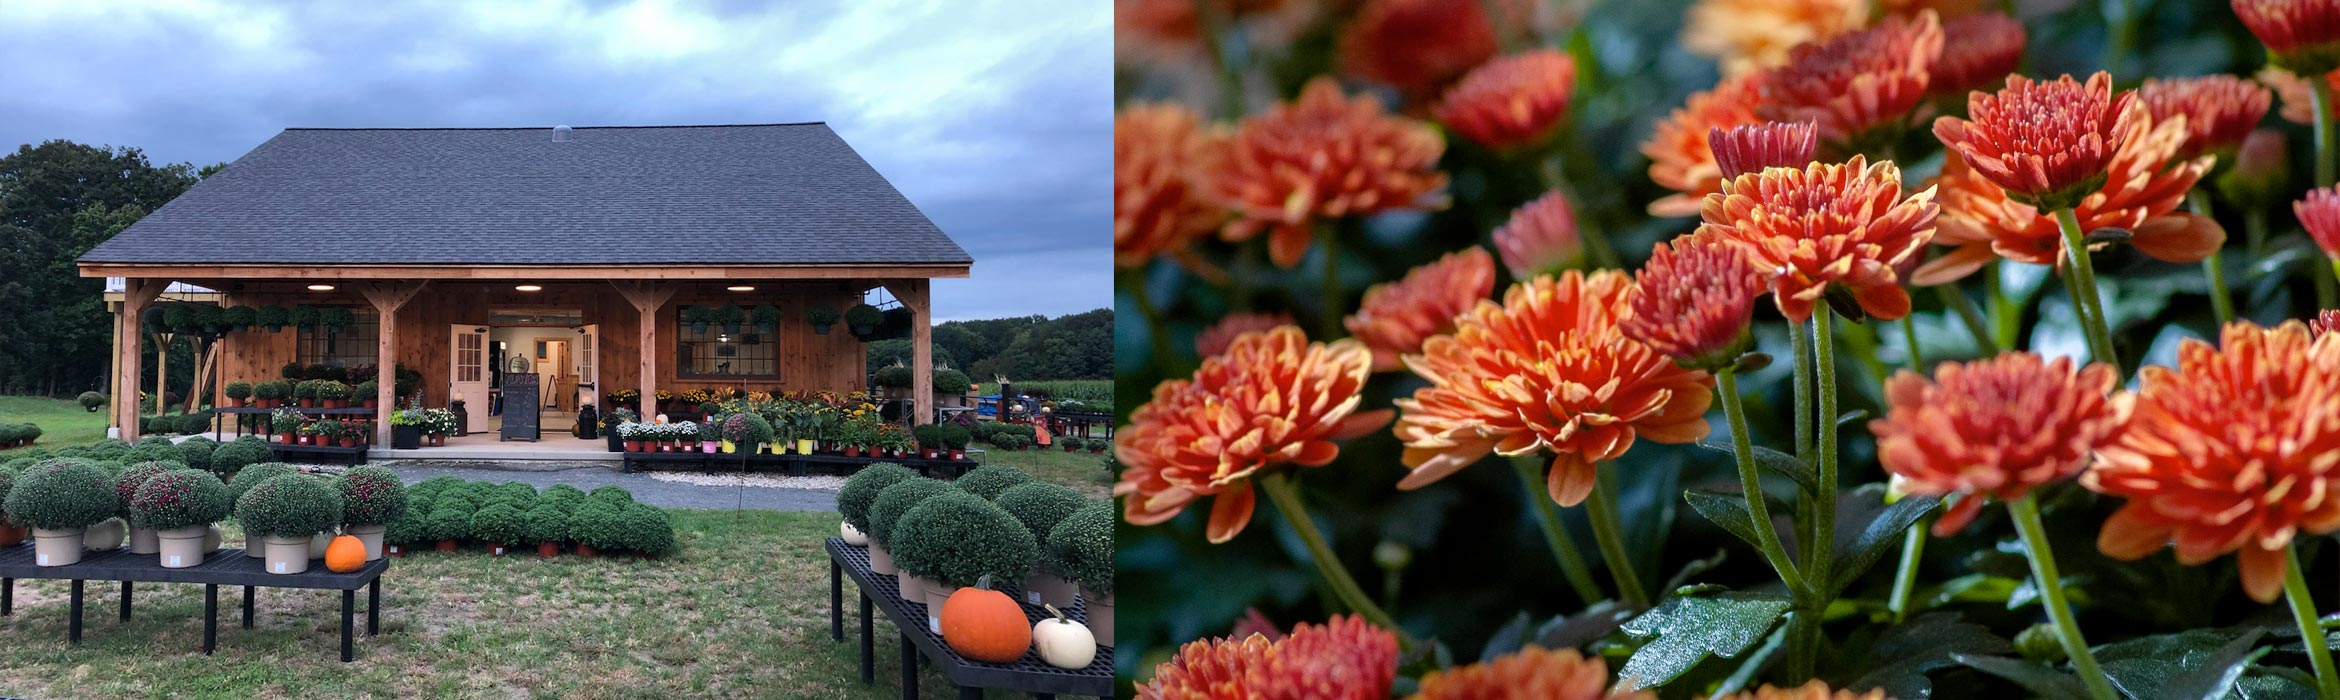 Pumpkins and chrysanthemums at the farm stand in autumn